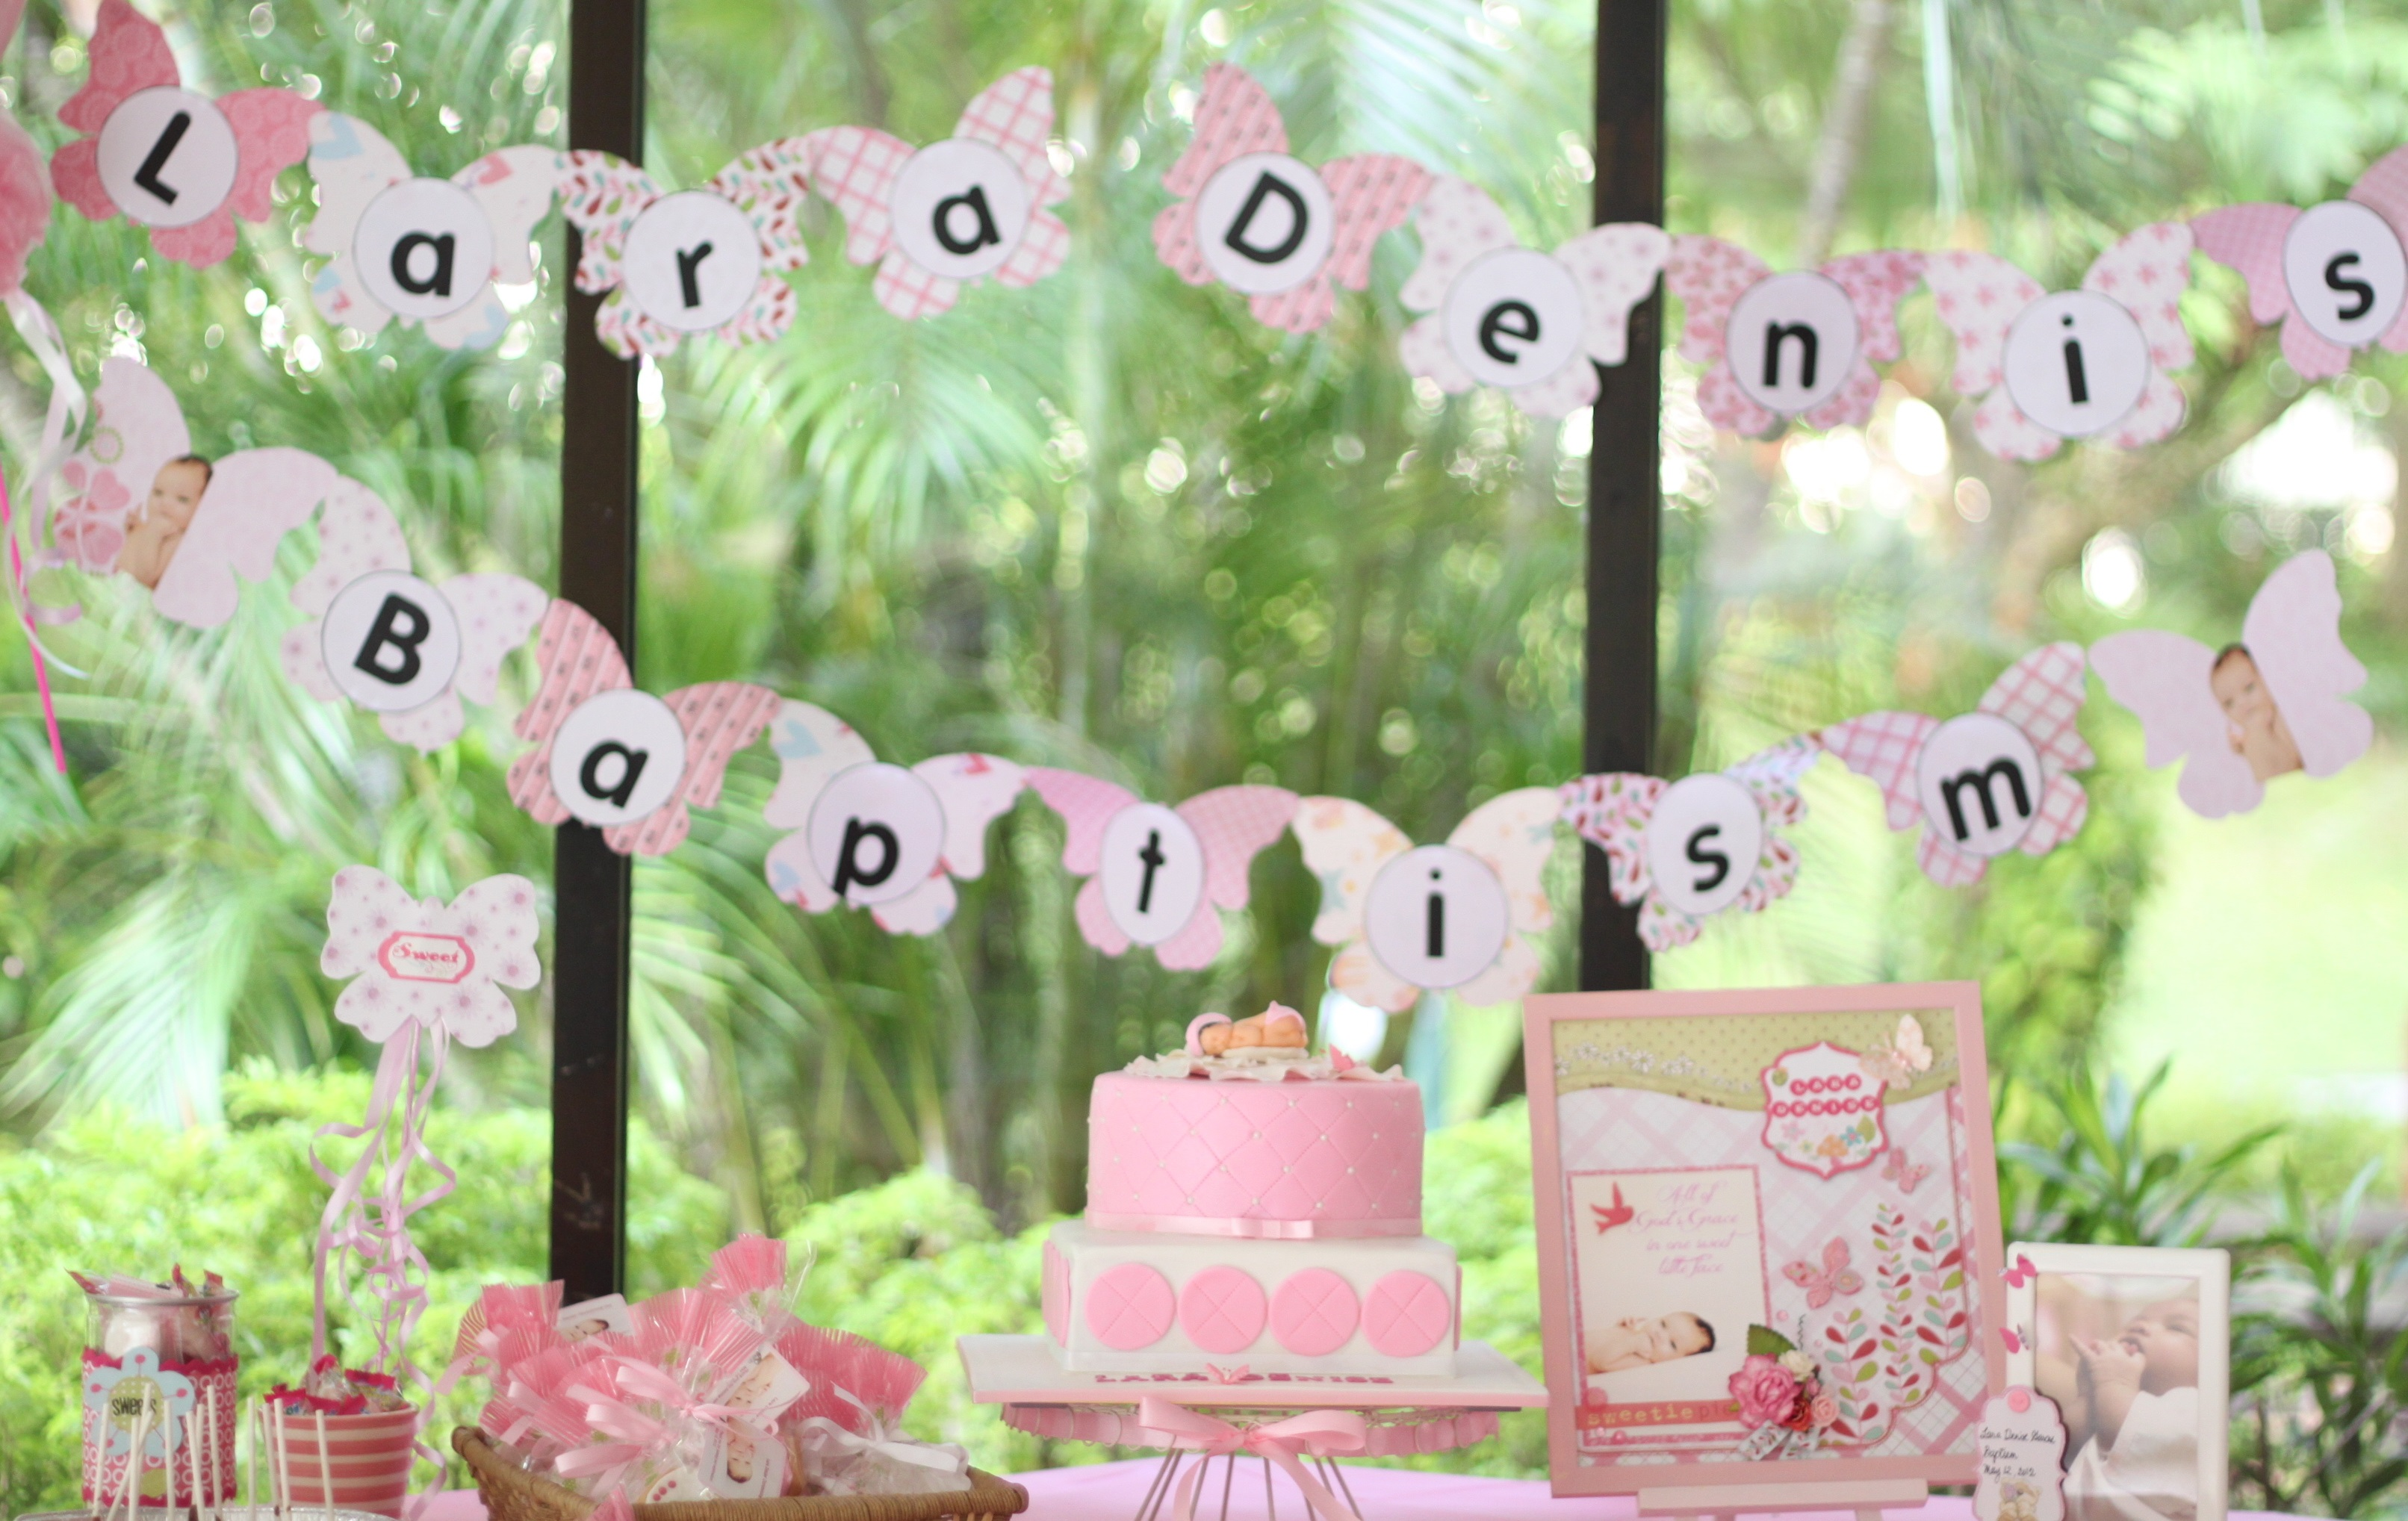 https://blog.boutique-magique.fr/wp-content/themes/BlogBM-Theme/images/christening_baptism_dessert_table.jpg